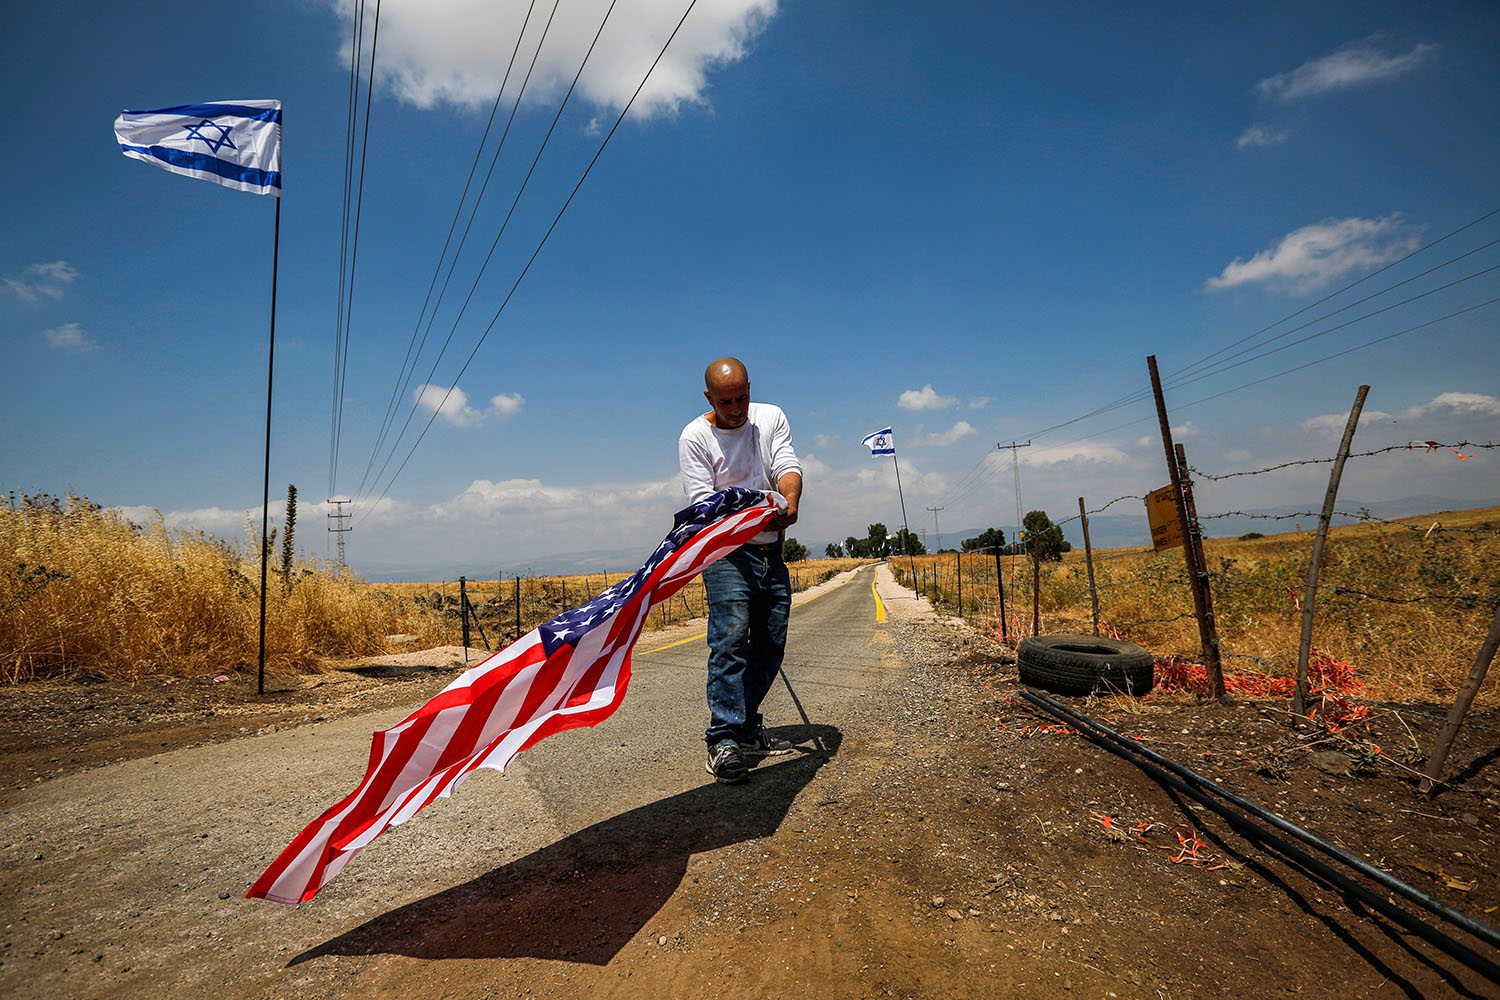 A worker attaches a U.S. flag to a mast before displaying it along the road with other Israeli flags in the settlement of Qela Bruchim in the Israeli-annexed Golan Heights on June 14. JALAA MAREY/AFP/Getty Images